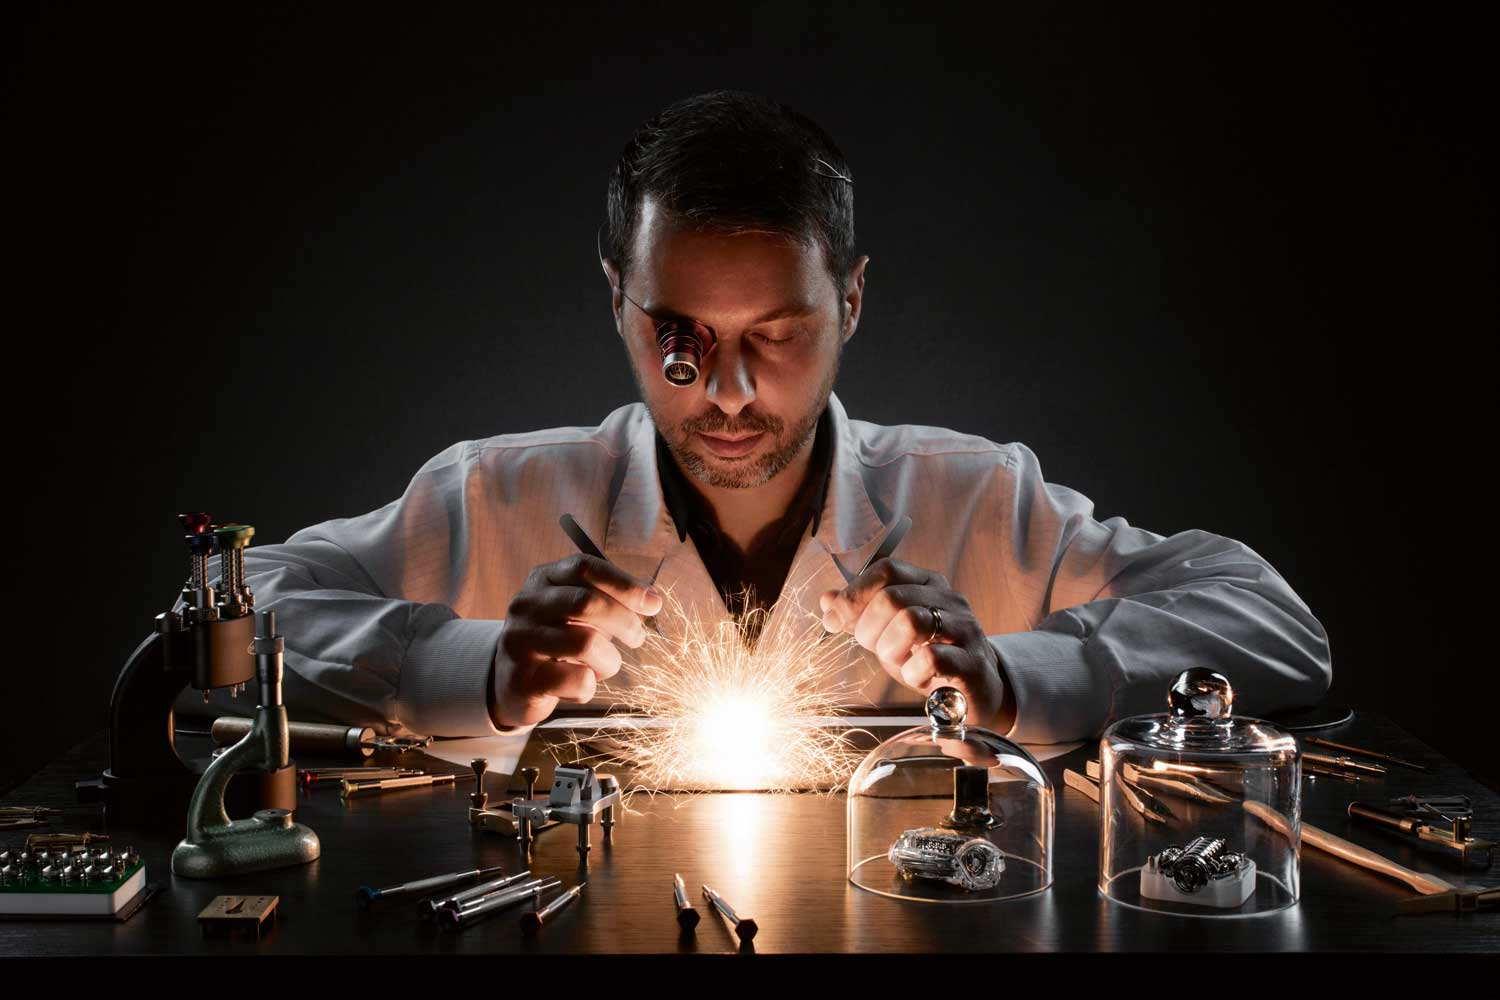 A visual released at the introduction of Magic Gold, featuring a watchmaker dynamically fusing technology with craft.